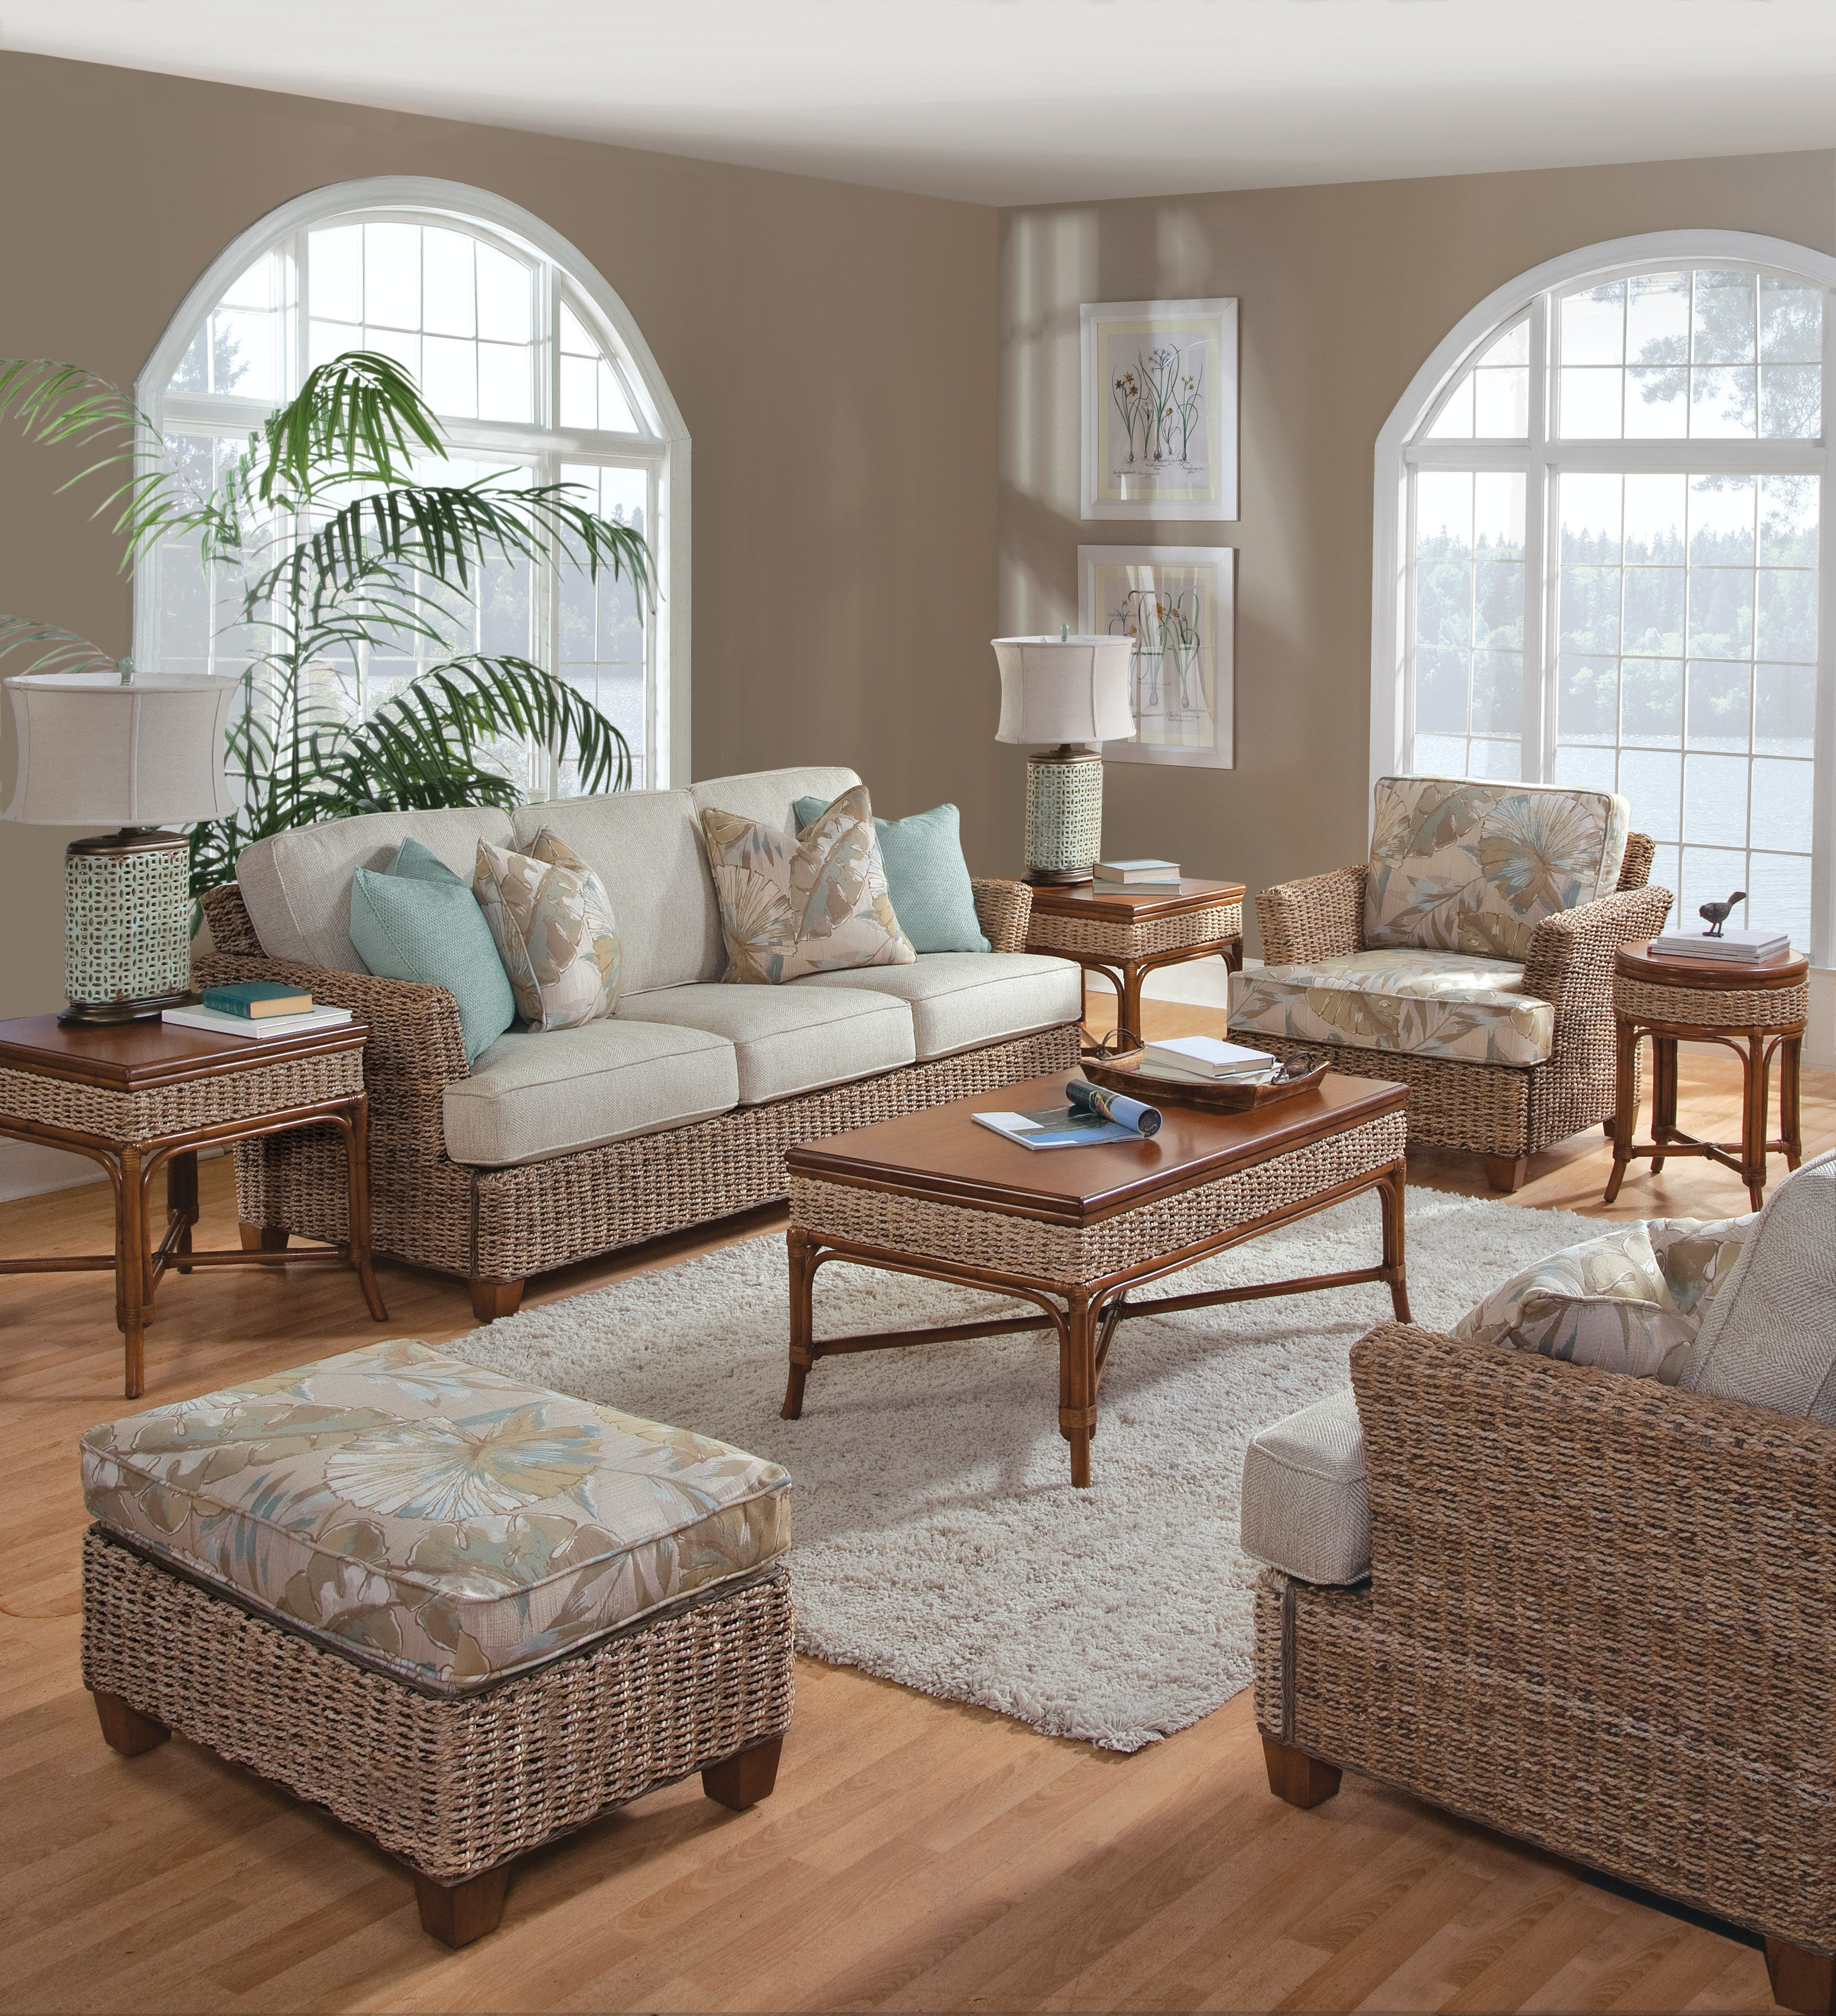 Living Room Set Colorful 2970lrset Speightstown Living Room Set Drurys Furniture Living Room Living Room Sets Drurys Inc Fountain Mn